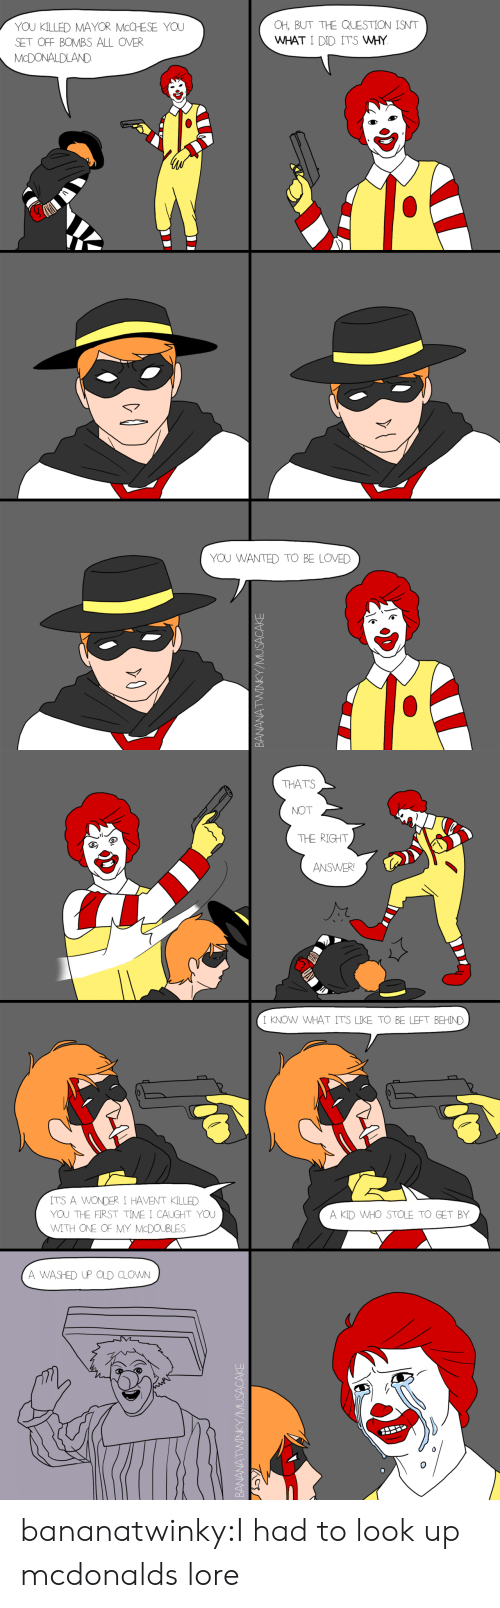 McDonalds, Tumblr, and Blog: YOU KILLED MAYOR McCHESE YOU  SET OFF BOMBS ALL OVER  McDONALDLAND  CH, BUT THE QUESTION INT  WHAT I DID ITS MHY  YOU WANTED TO BE LOVED  CO  2   THATS  NOT  THE RIGHT  ANSWER  I KNOW WHAT ITS LIKE TO BE LEFT BEHIND  ITS A WONDER I HAVENT KILLED  YOJ THE FIRST TIME I CAUGHT YOU  A KID WHO STOLE TO GET BY  TH ONE OF MY McDOUB  A WASHED UP OLD CLOWN bananatwinky:I had to look up mcdonalds lore